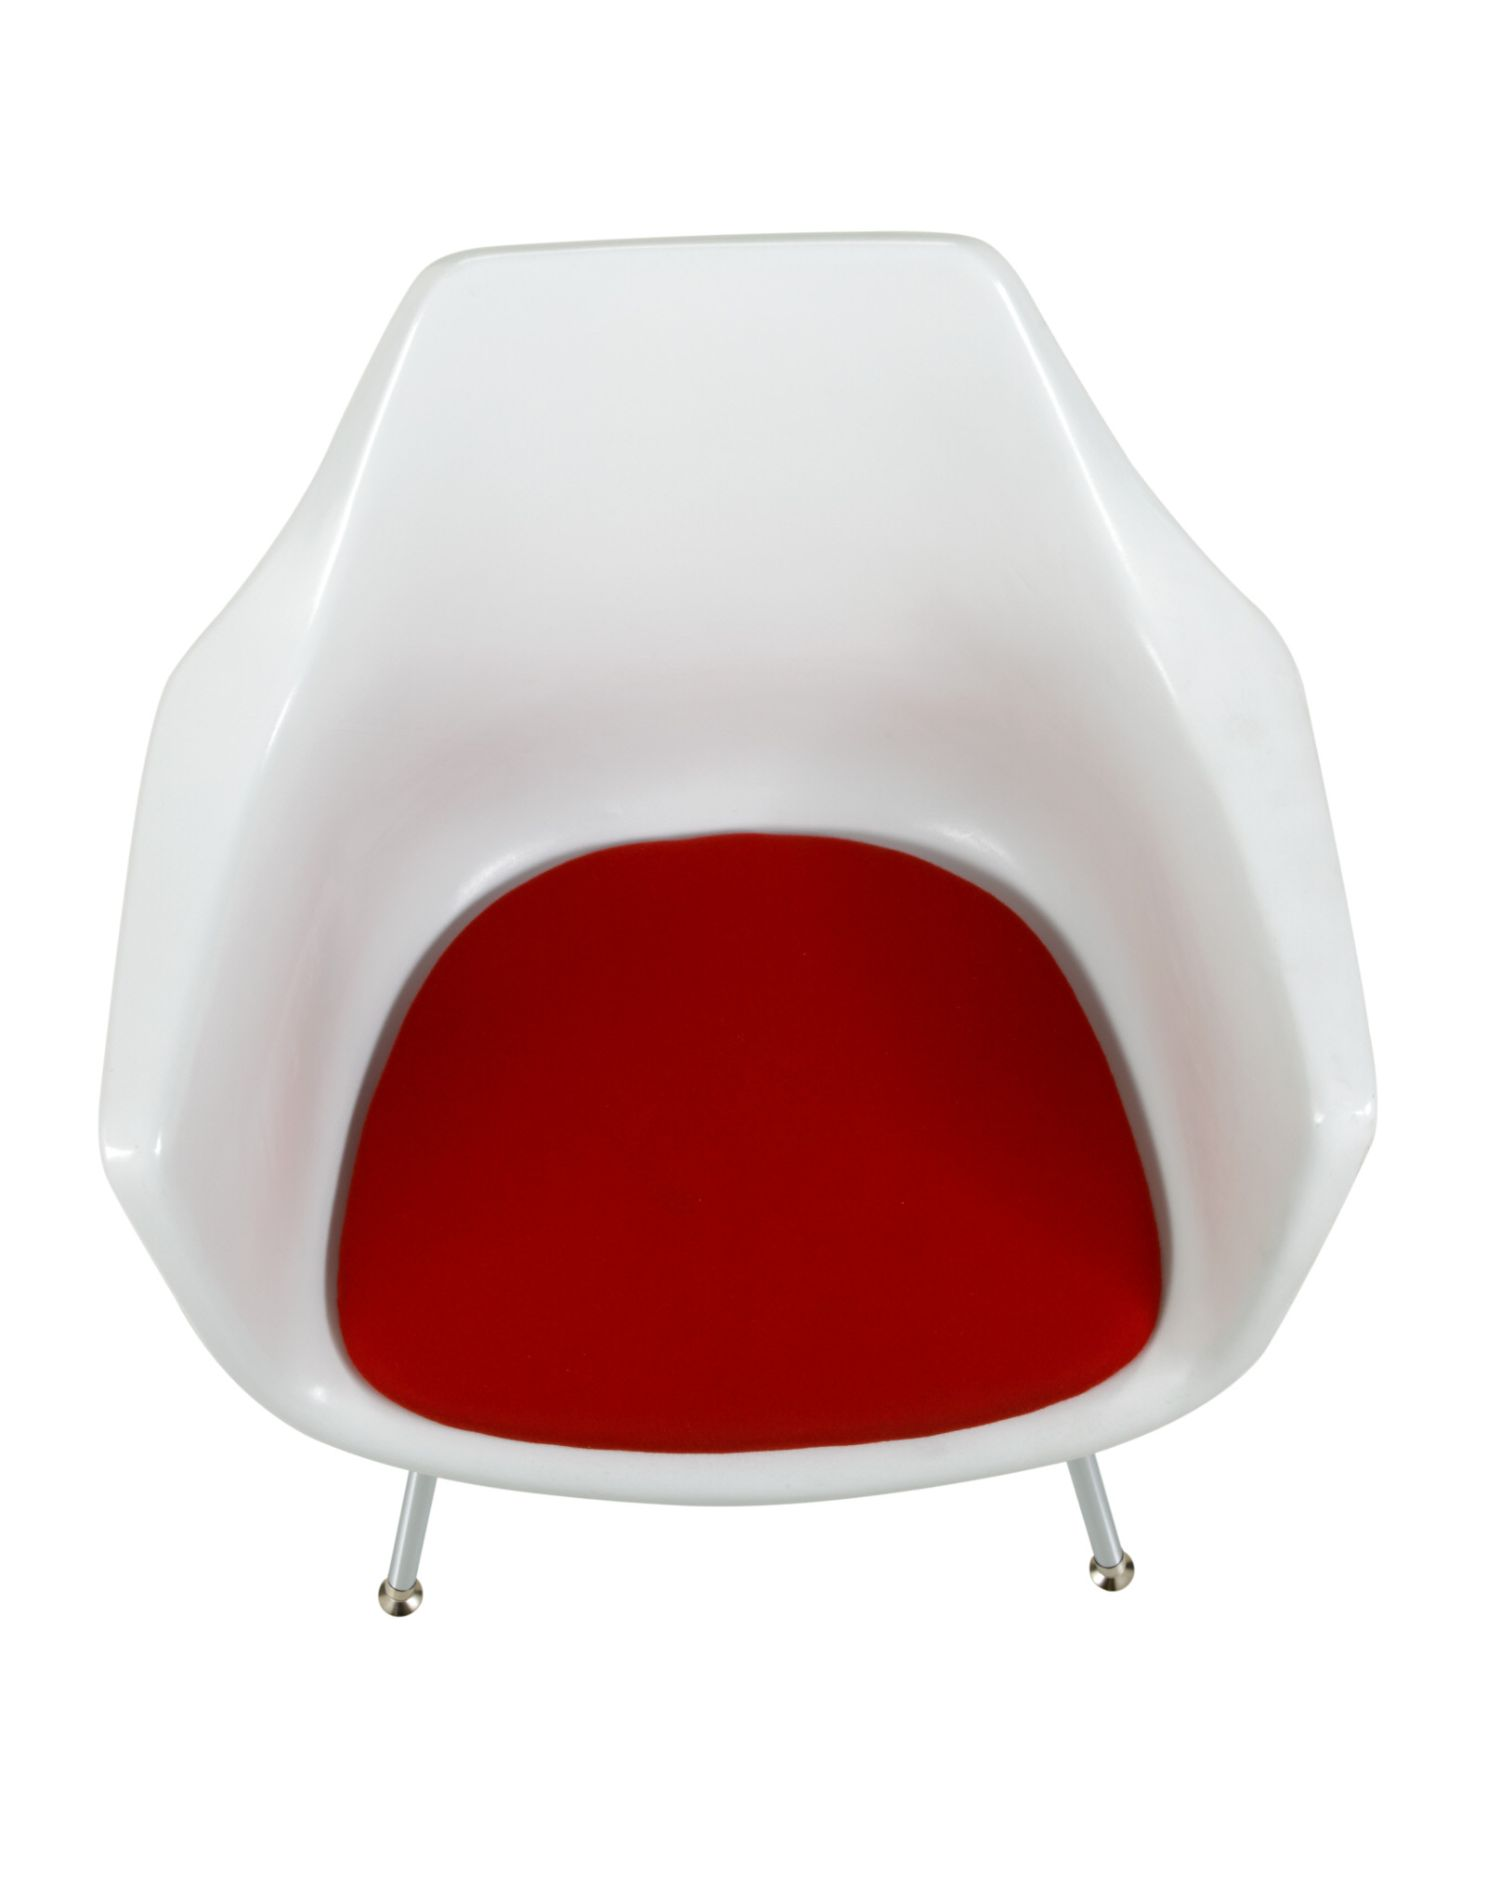 ki jubi guest chair - overhead view